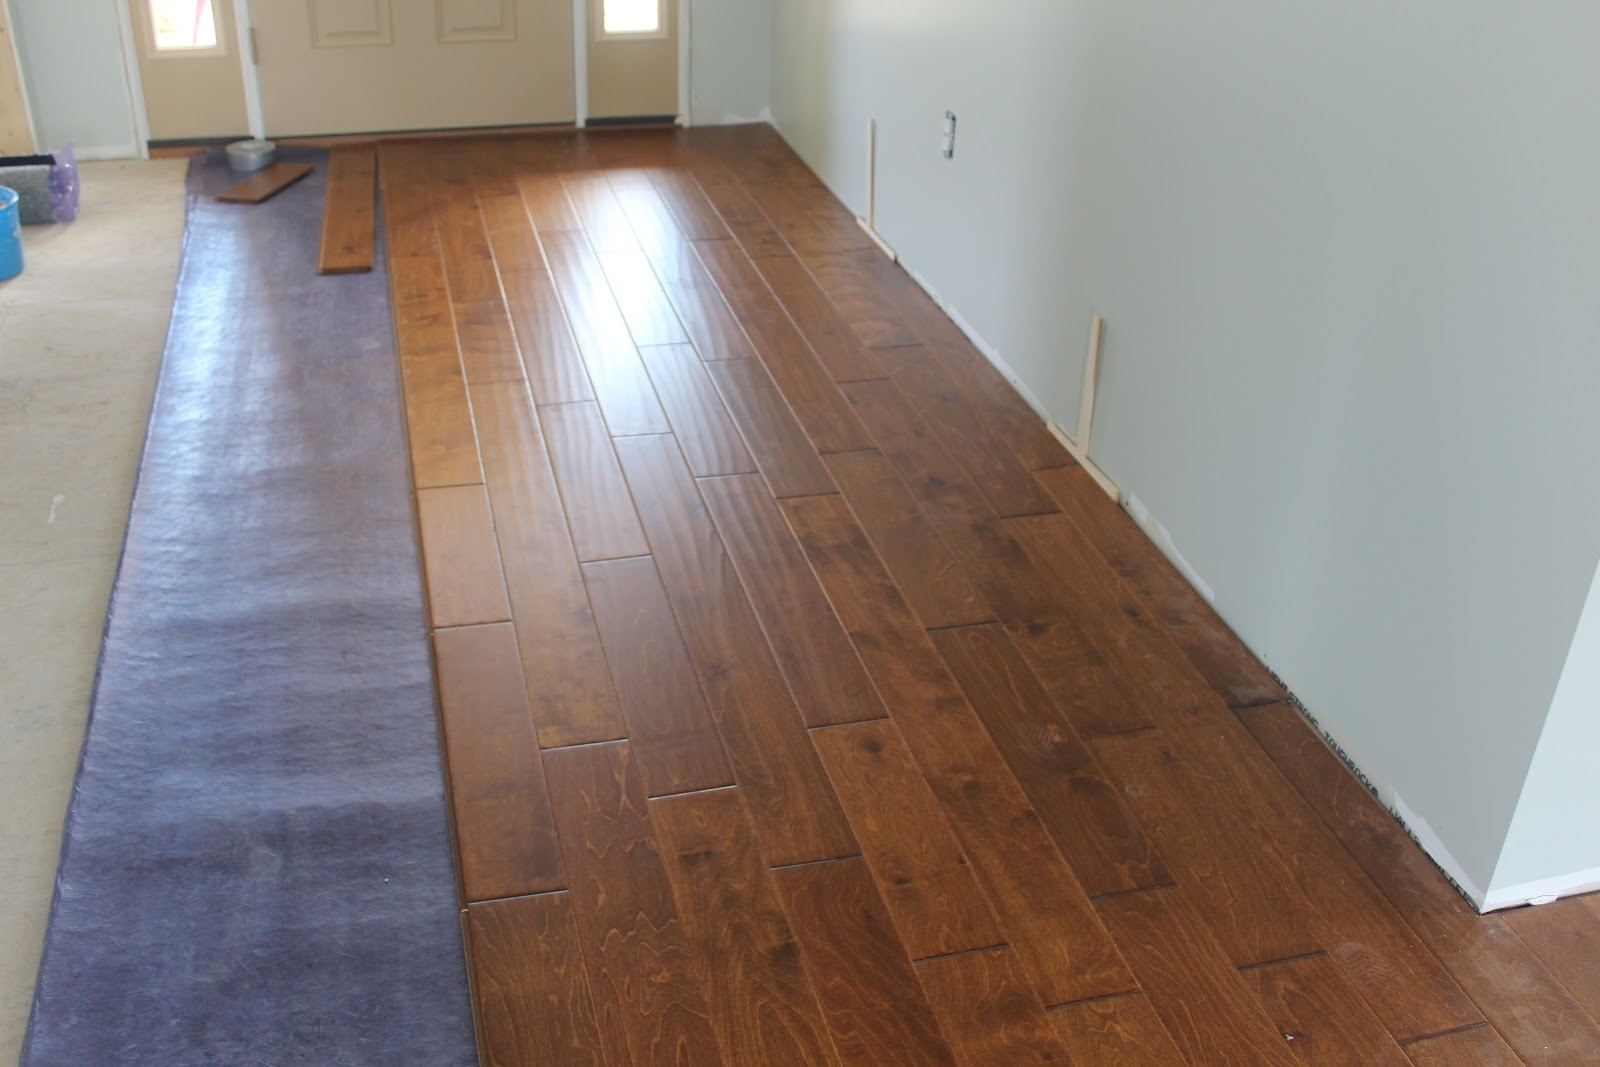 Permalink to Floating Engineered Wood Floor Over Concrete